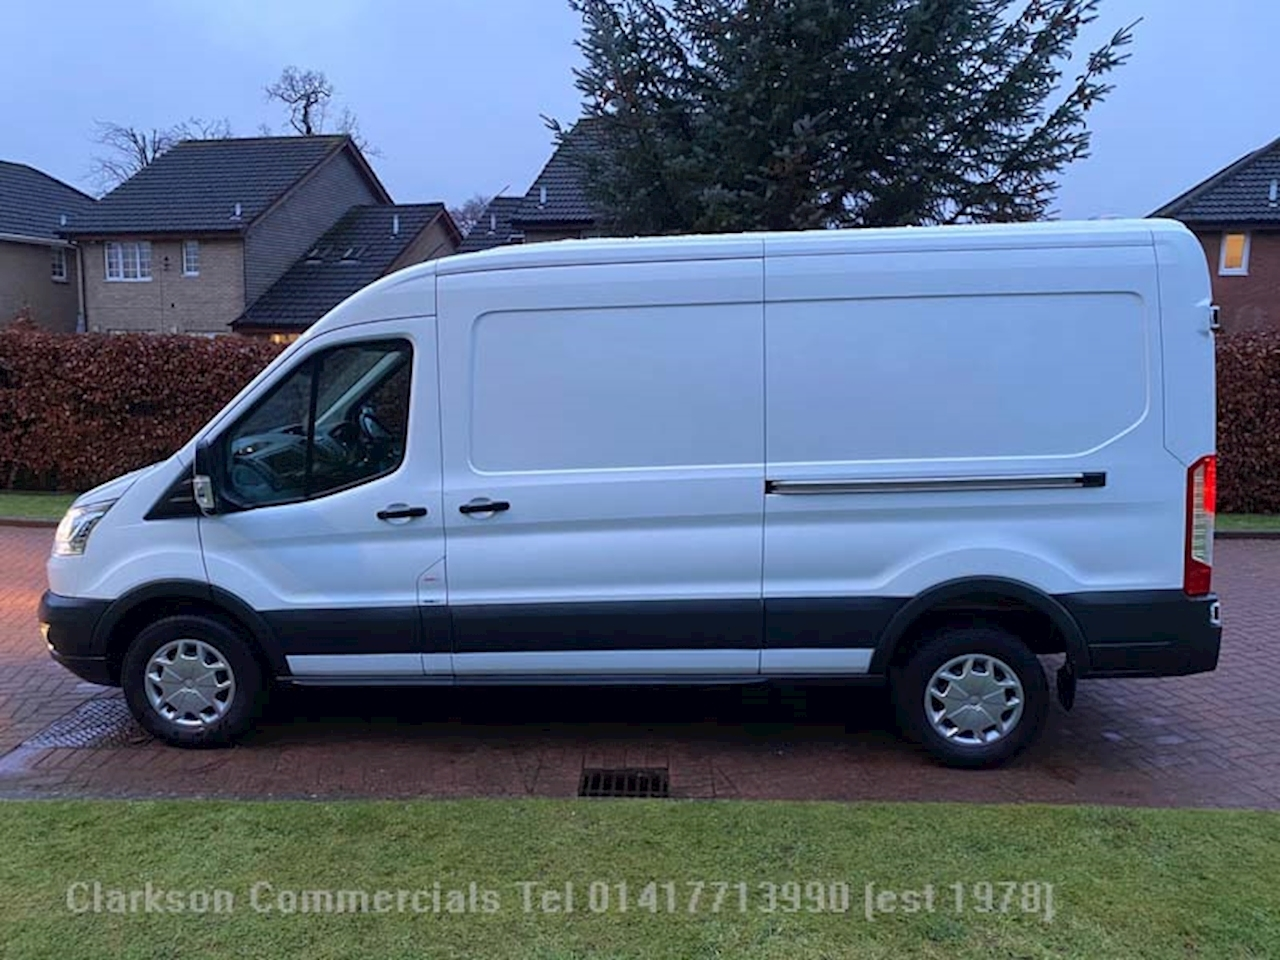 Ford 2.0 350 EcoBlue Panel Van 5dr Diesel Manual RWD L3 H2 EU6 (130 ps)